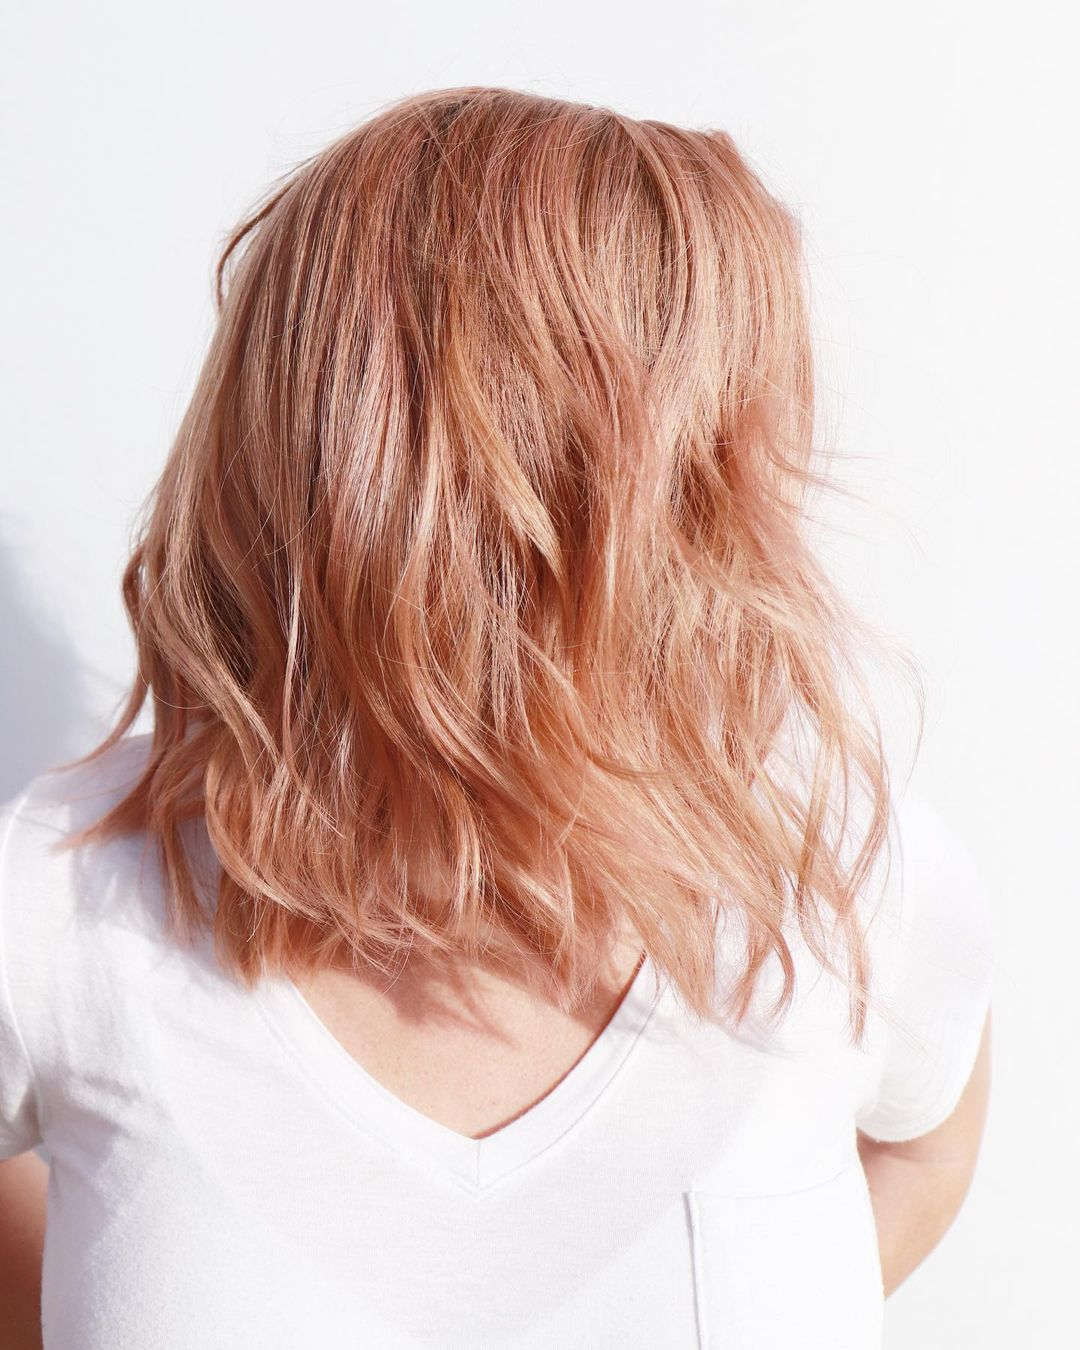 Chest-Length Strawberry blond Layers